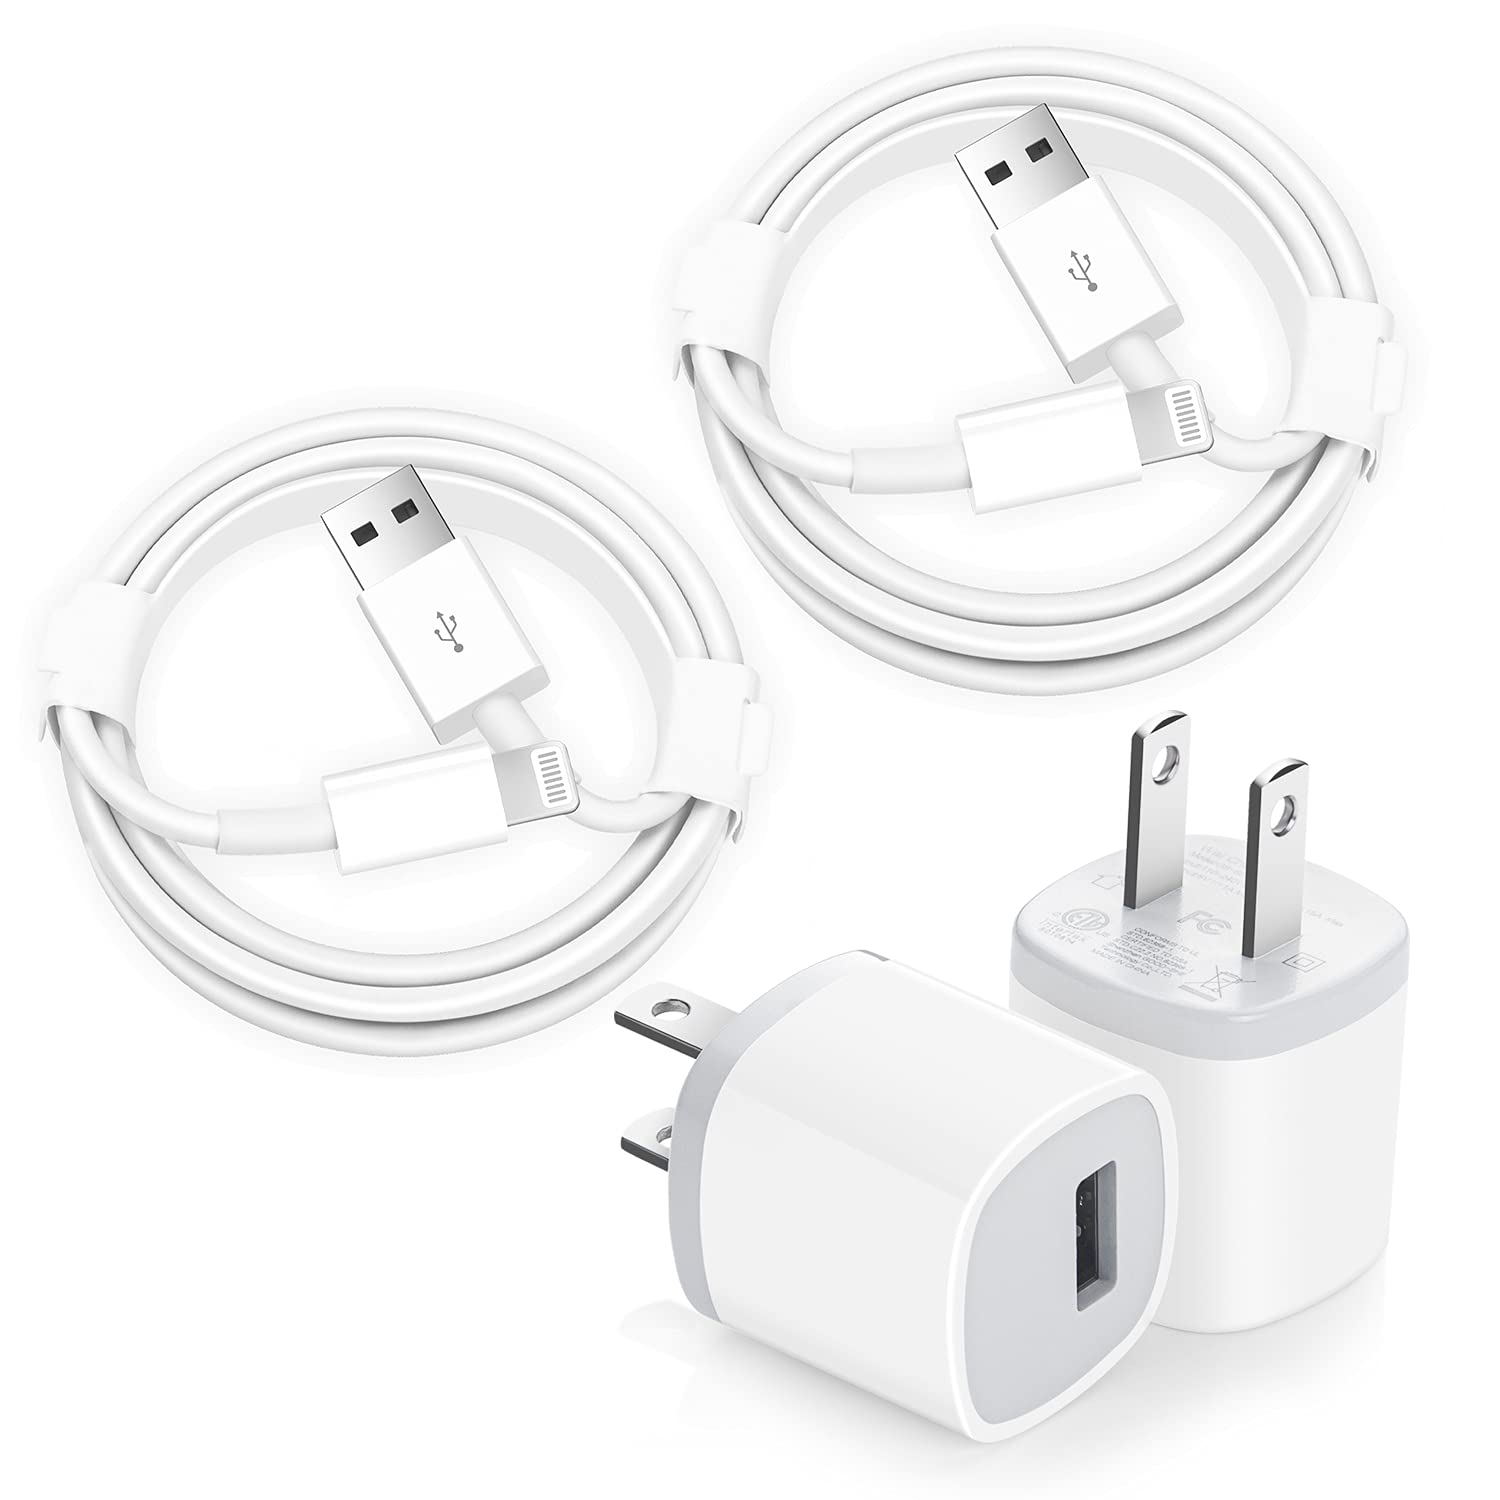 iPhone Charger, [Apple MFi Certified] 6FT 2Pack USB Fast Charger Charging Cube Durable Compact Power Adapter Travel Plug & Lightning Cable Cord Compatible iPhone 12/12 Mini/12 Pro/Pro Max/11/Pro/Xs/XR